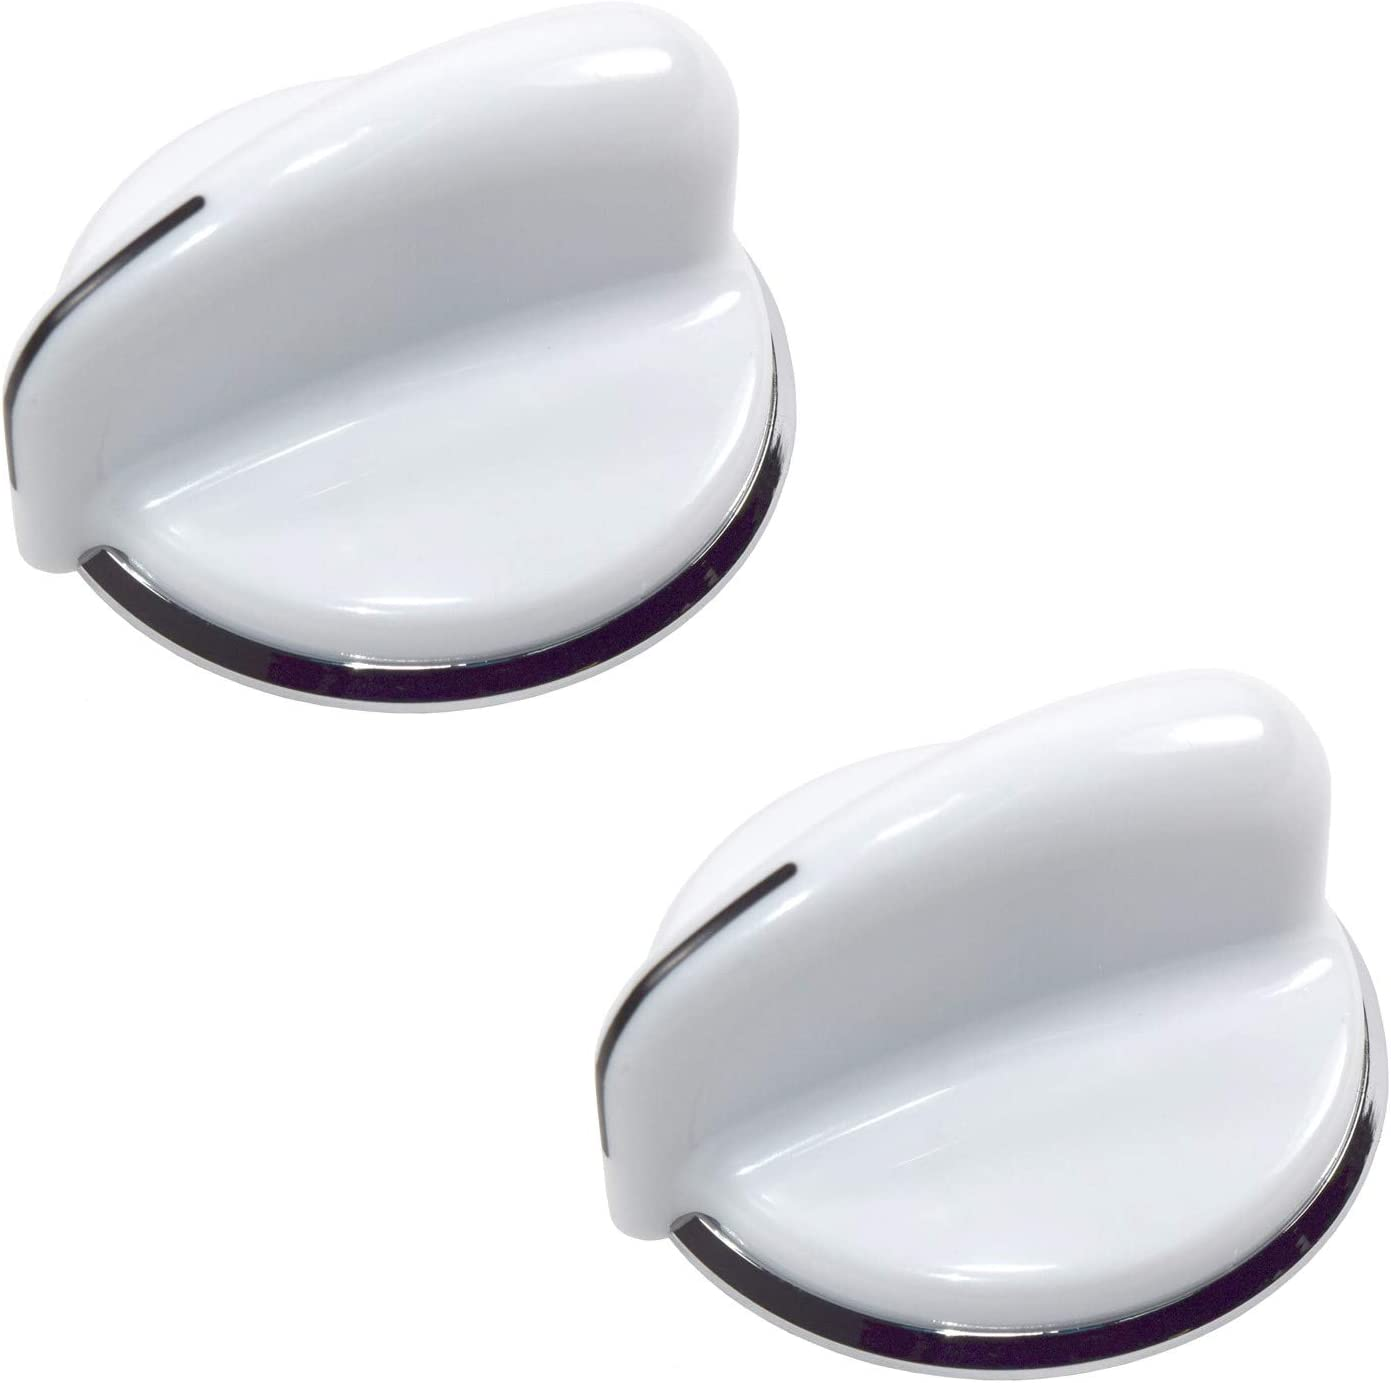 HQRP 2-Pack Washer/Dryer Control Knobs Replacement for General Electric GE WE01X20378 AP5806667 175D3296P001 WH01X10107 WH01X10060 WH01X10460 3280609 PS9493075 WE01X20432 WH01X10307 plus HQRP Coaster